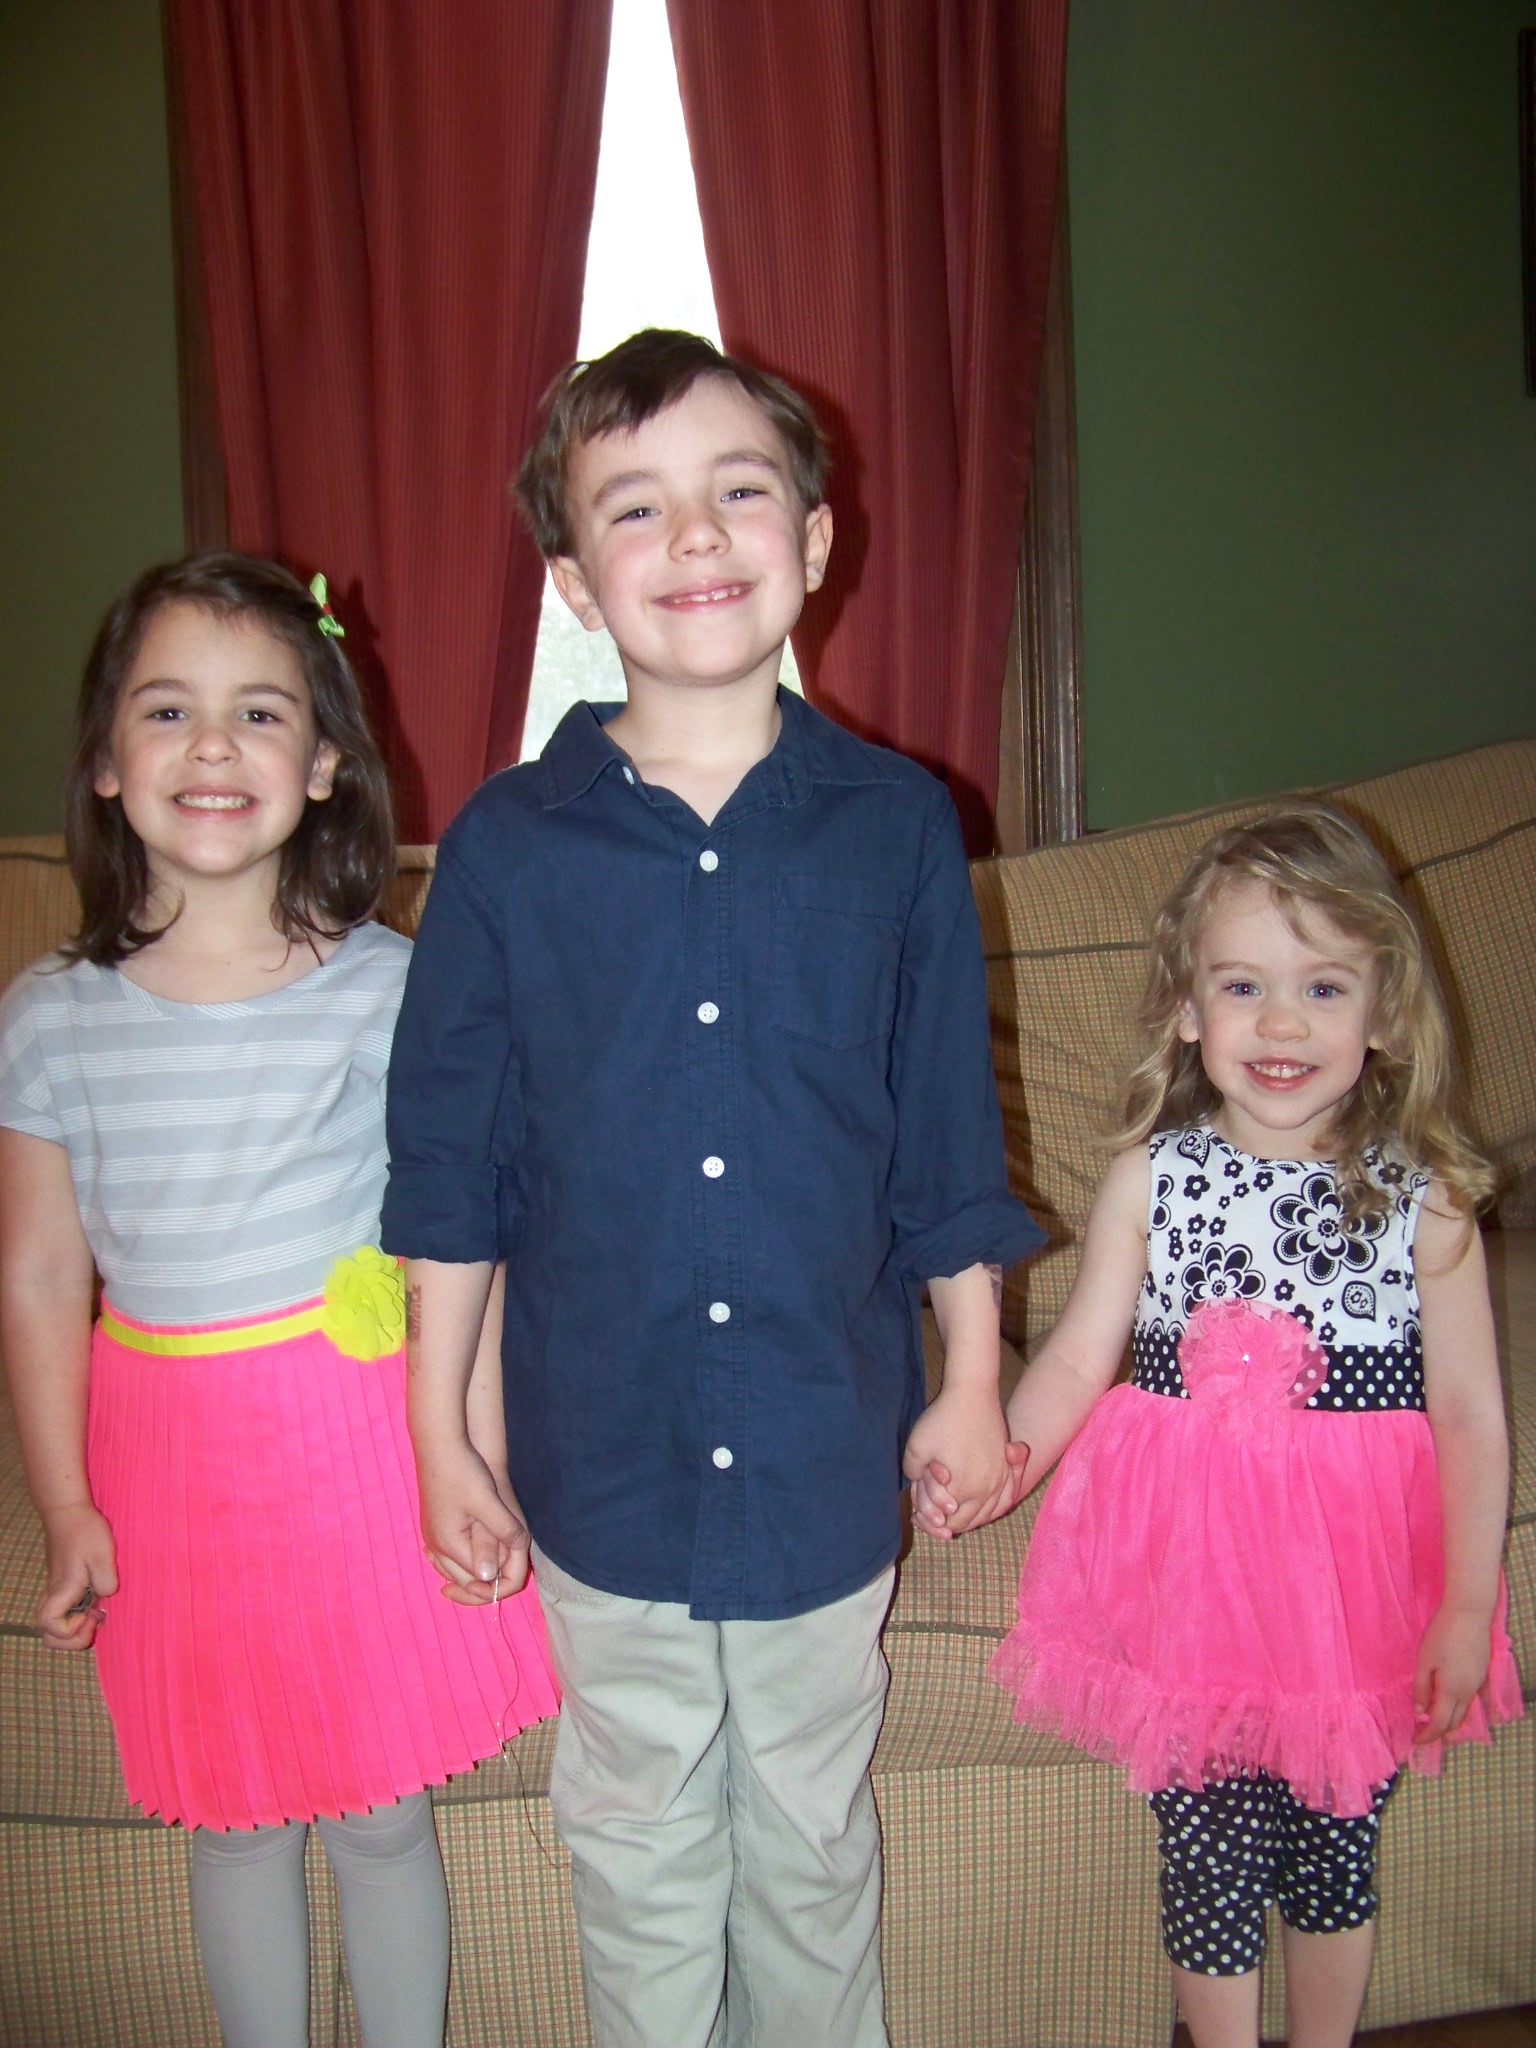 Letter to my children: I'm Only a Dad – Don't Forget This Blog